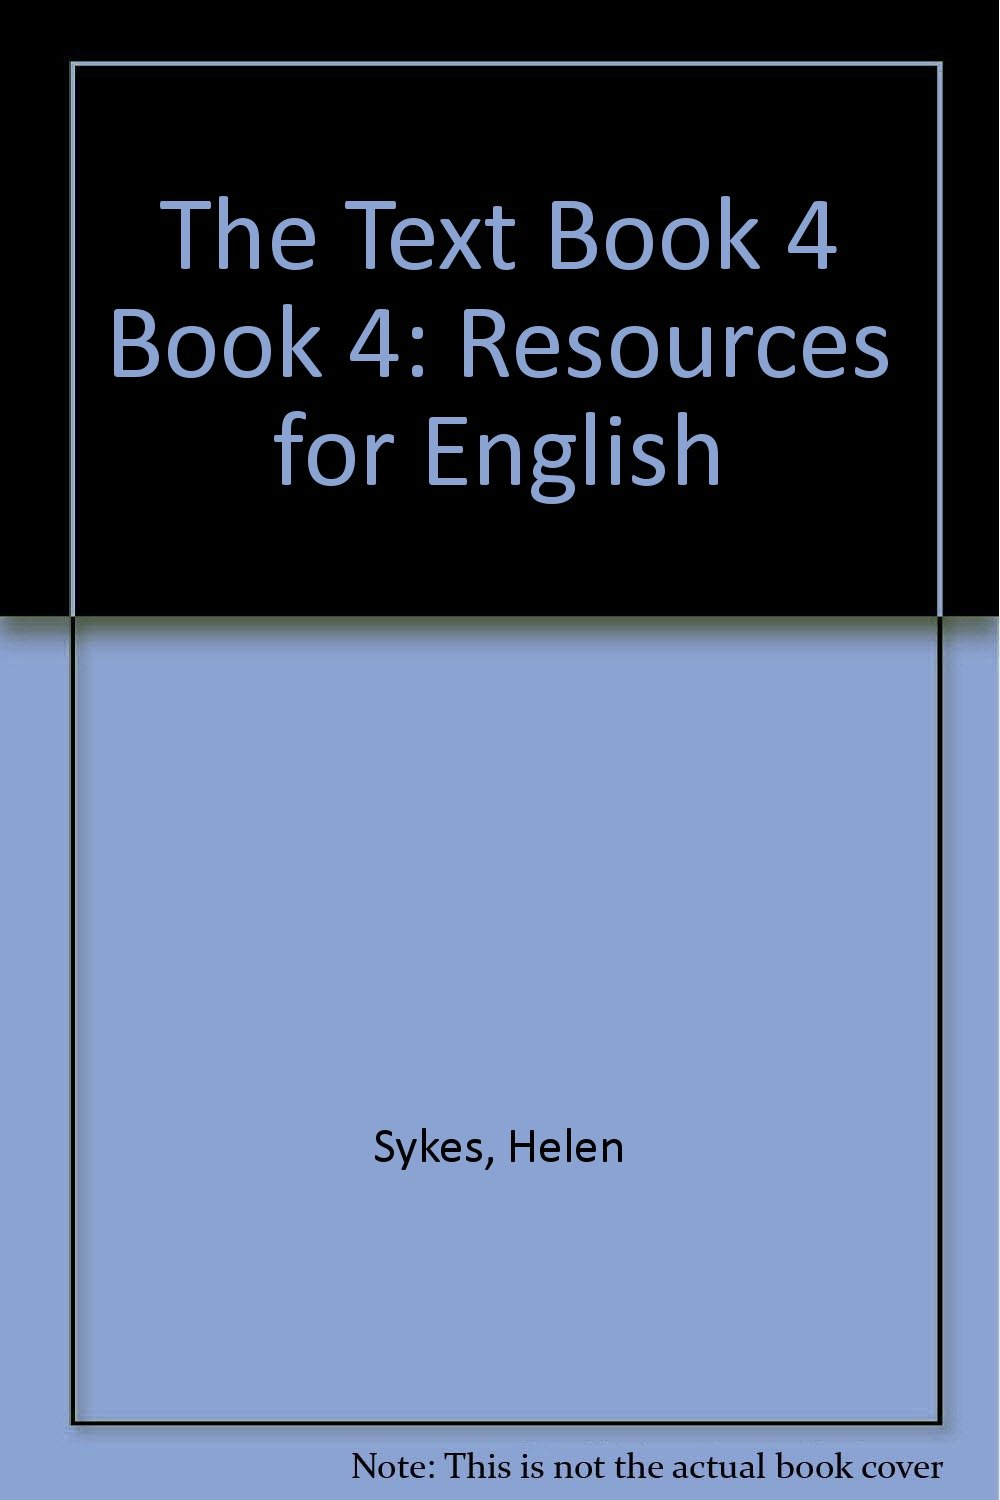 The Text Book 4 Book 4: Resources for English ebook